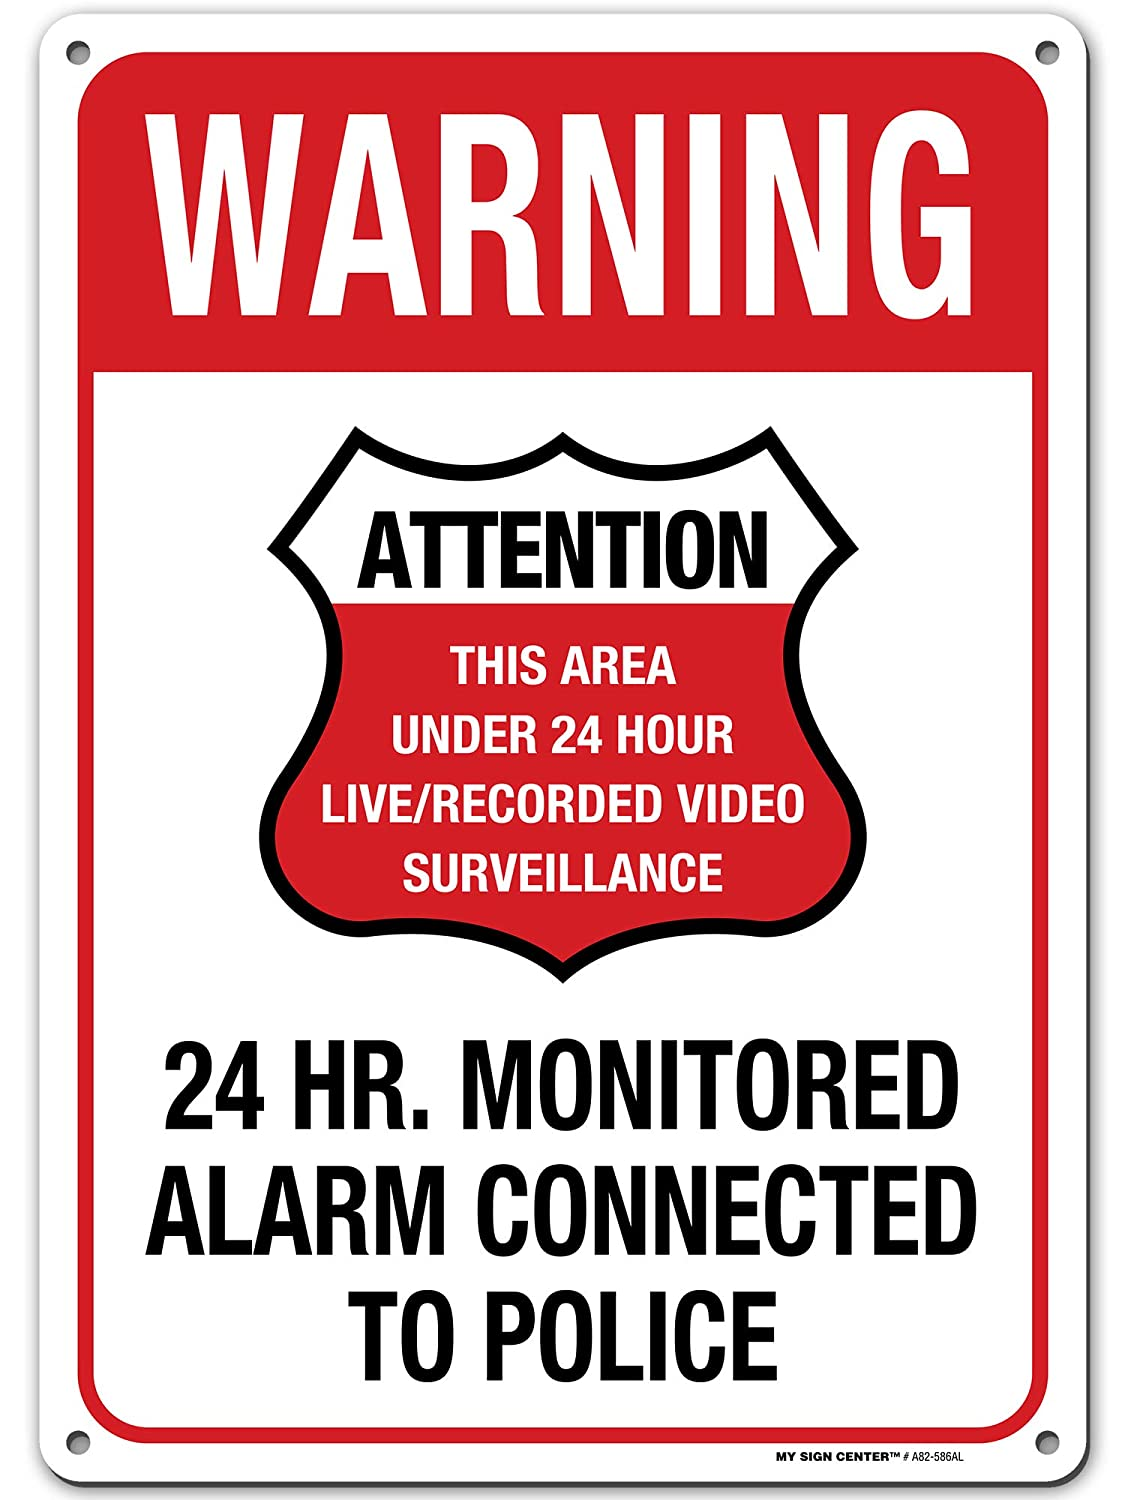 """Warning 24 Hrs Property Video Surveillance Alarm Connected to Police Sign, 10"""" x 14"""" Industrial Grade Aluminum, Easy Mounting, Rust-Free/Fade Resistance, Indoor/Outdoor, USA Made by MY SIGN CENTER"""